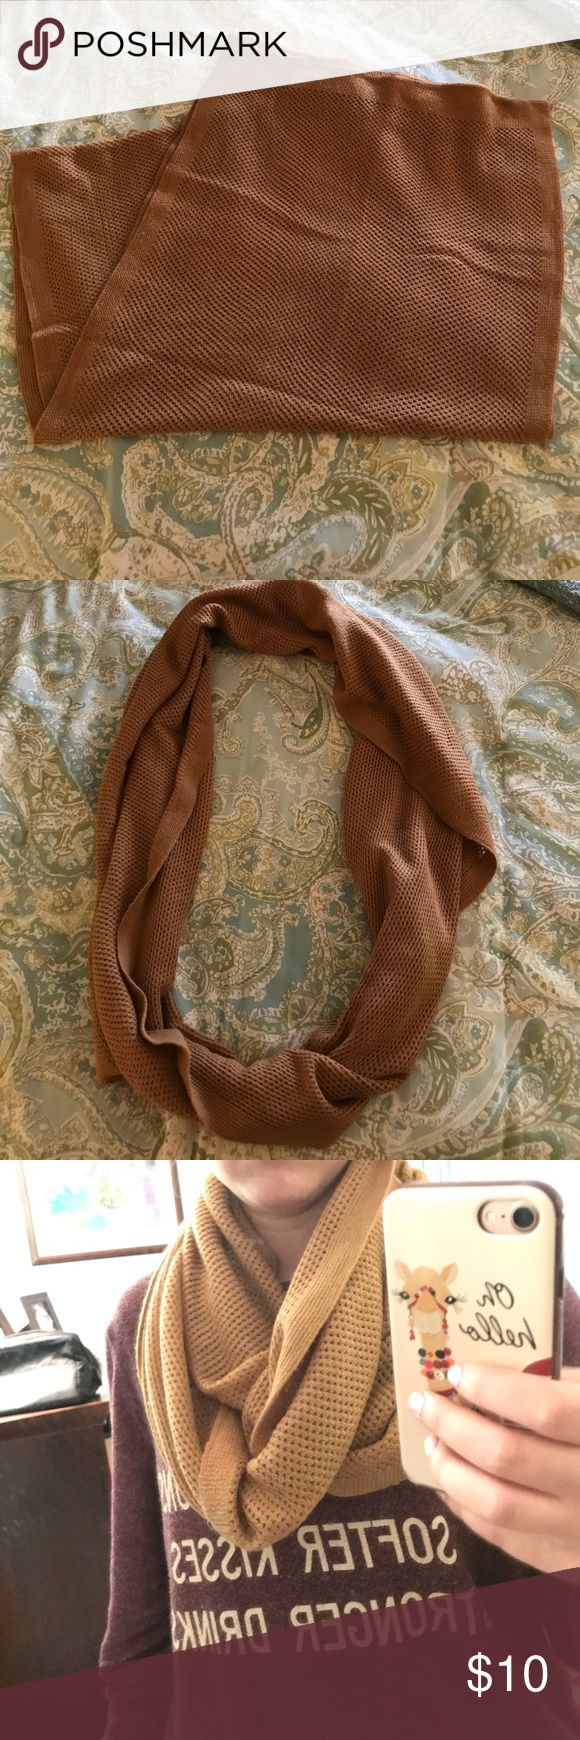 Nordstrom's Infiniti scarf Tan Infiniti scarf from Nordstrom's b.p. department in great condition! Nordstrom Accessories Scarves & Wraps